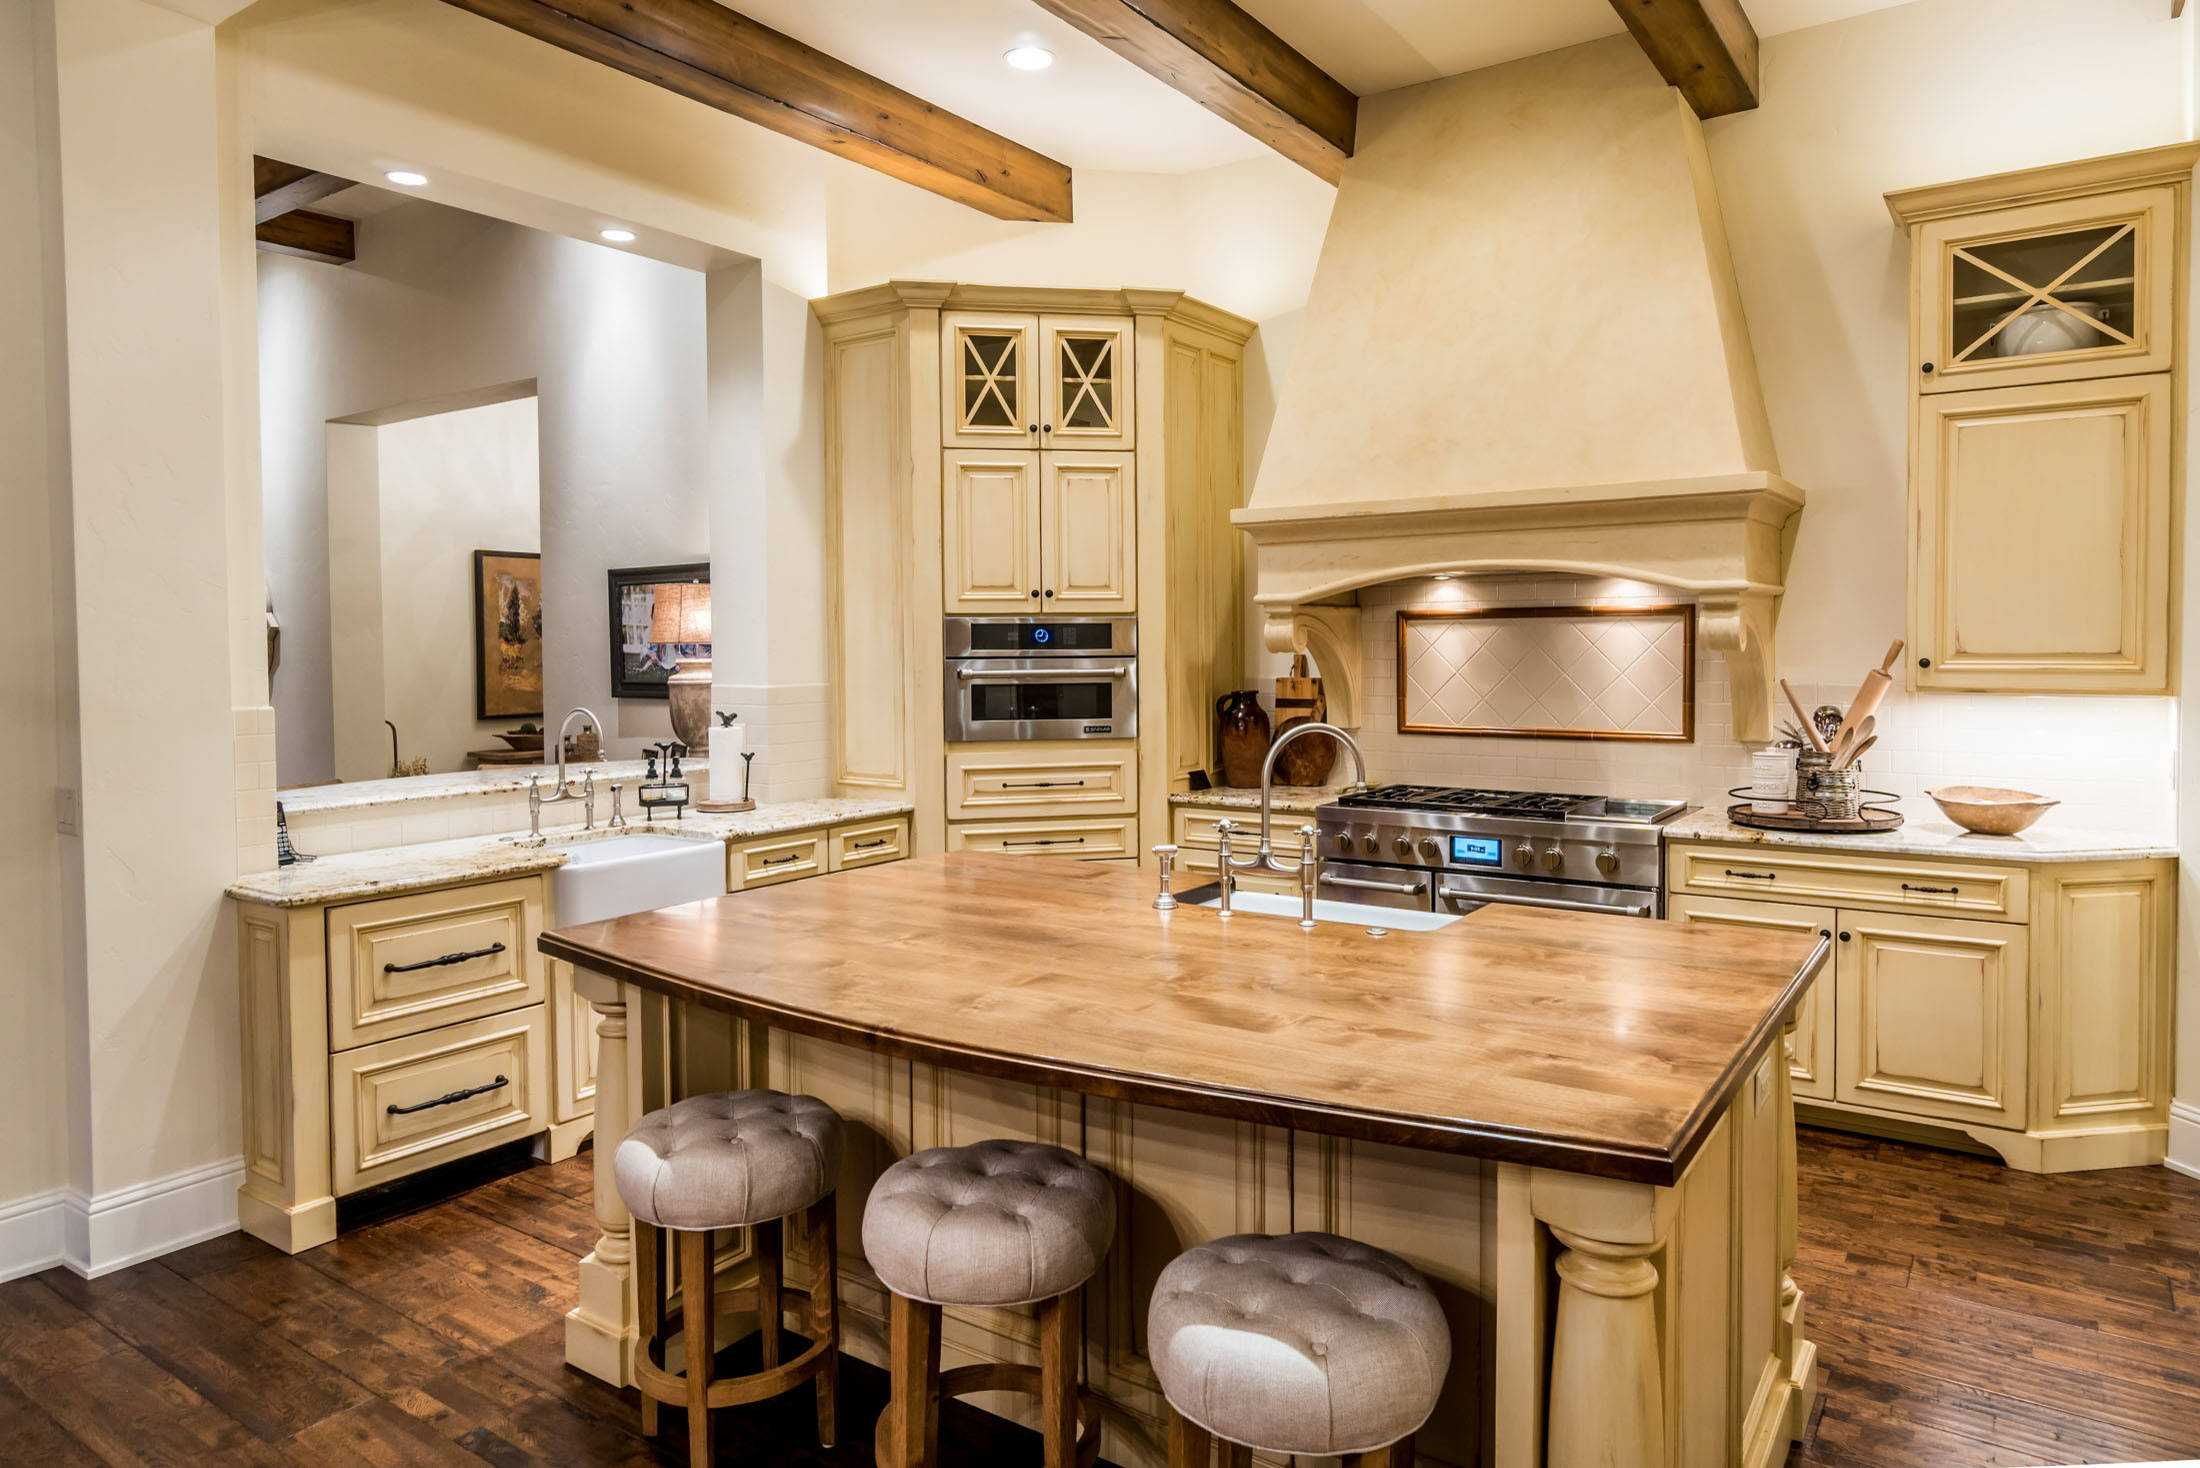 15 Inspirational Rustic Kitchen Designs You Will Adore on Model Kitchen Ideas  id=32007